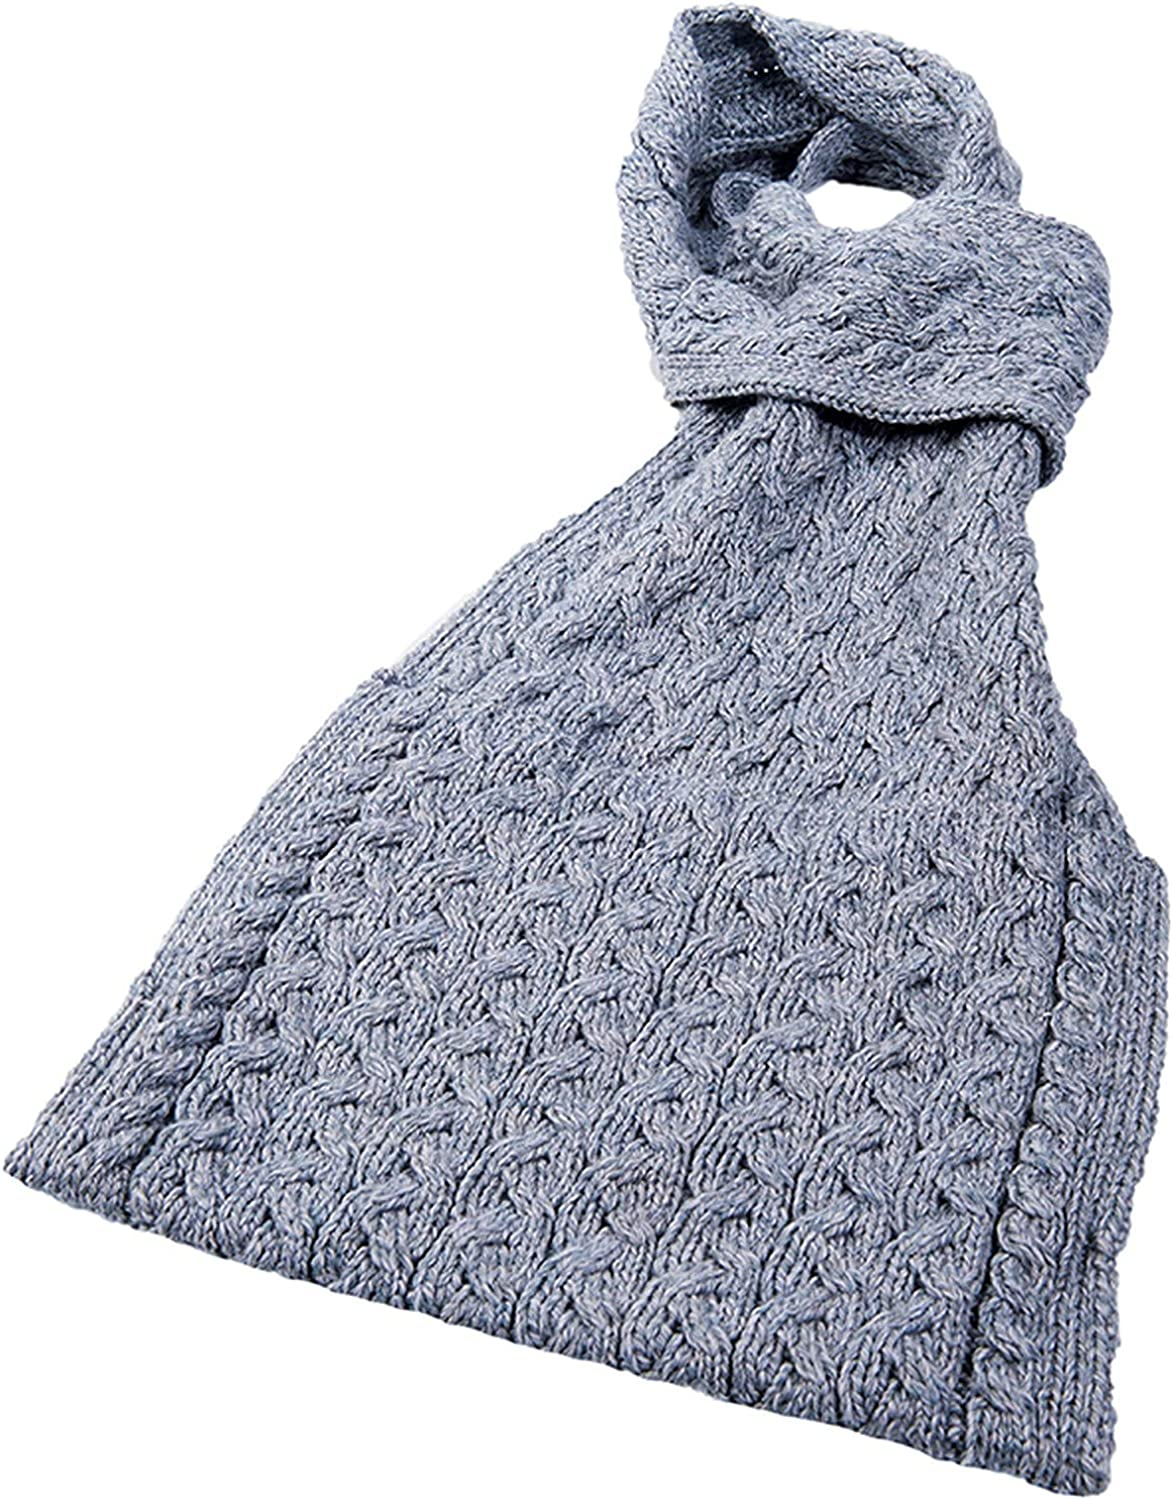 BLACK ONE SIZE WOMANS WINTER SCARF WITH BUILT-IN HOOD /& POCKETS WHITE